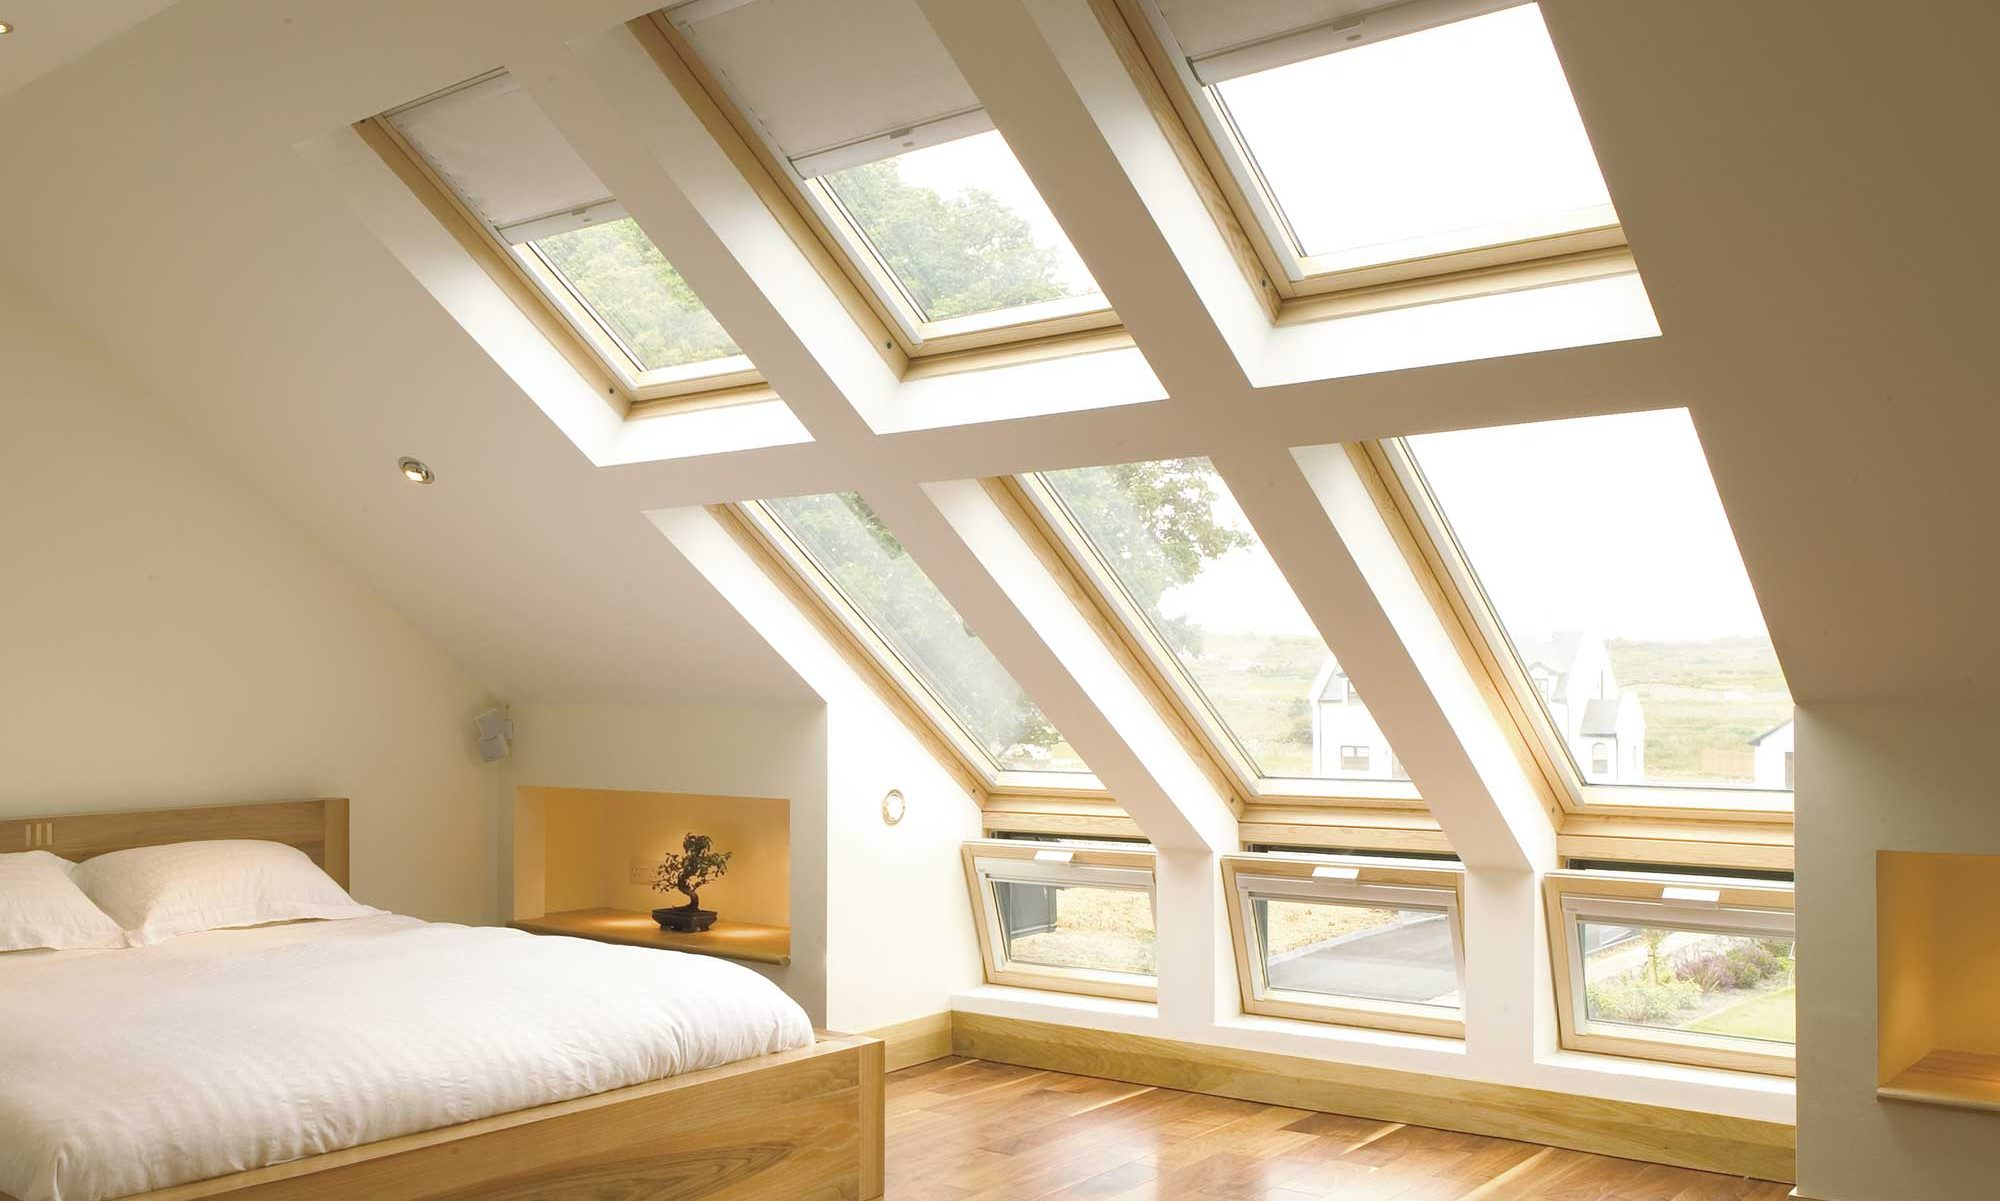 Stockport Loft Conversions Dorma Ladders And Attic Bedrooms